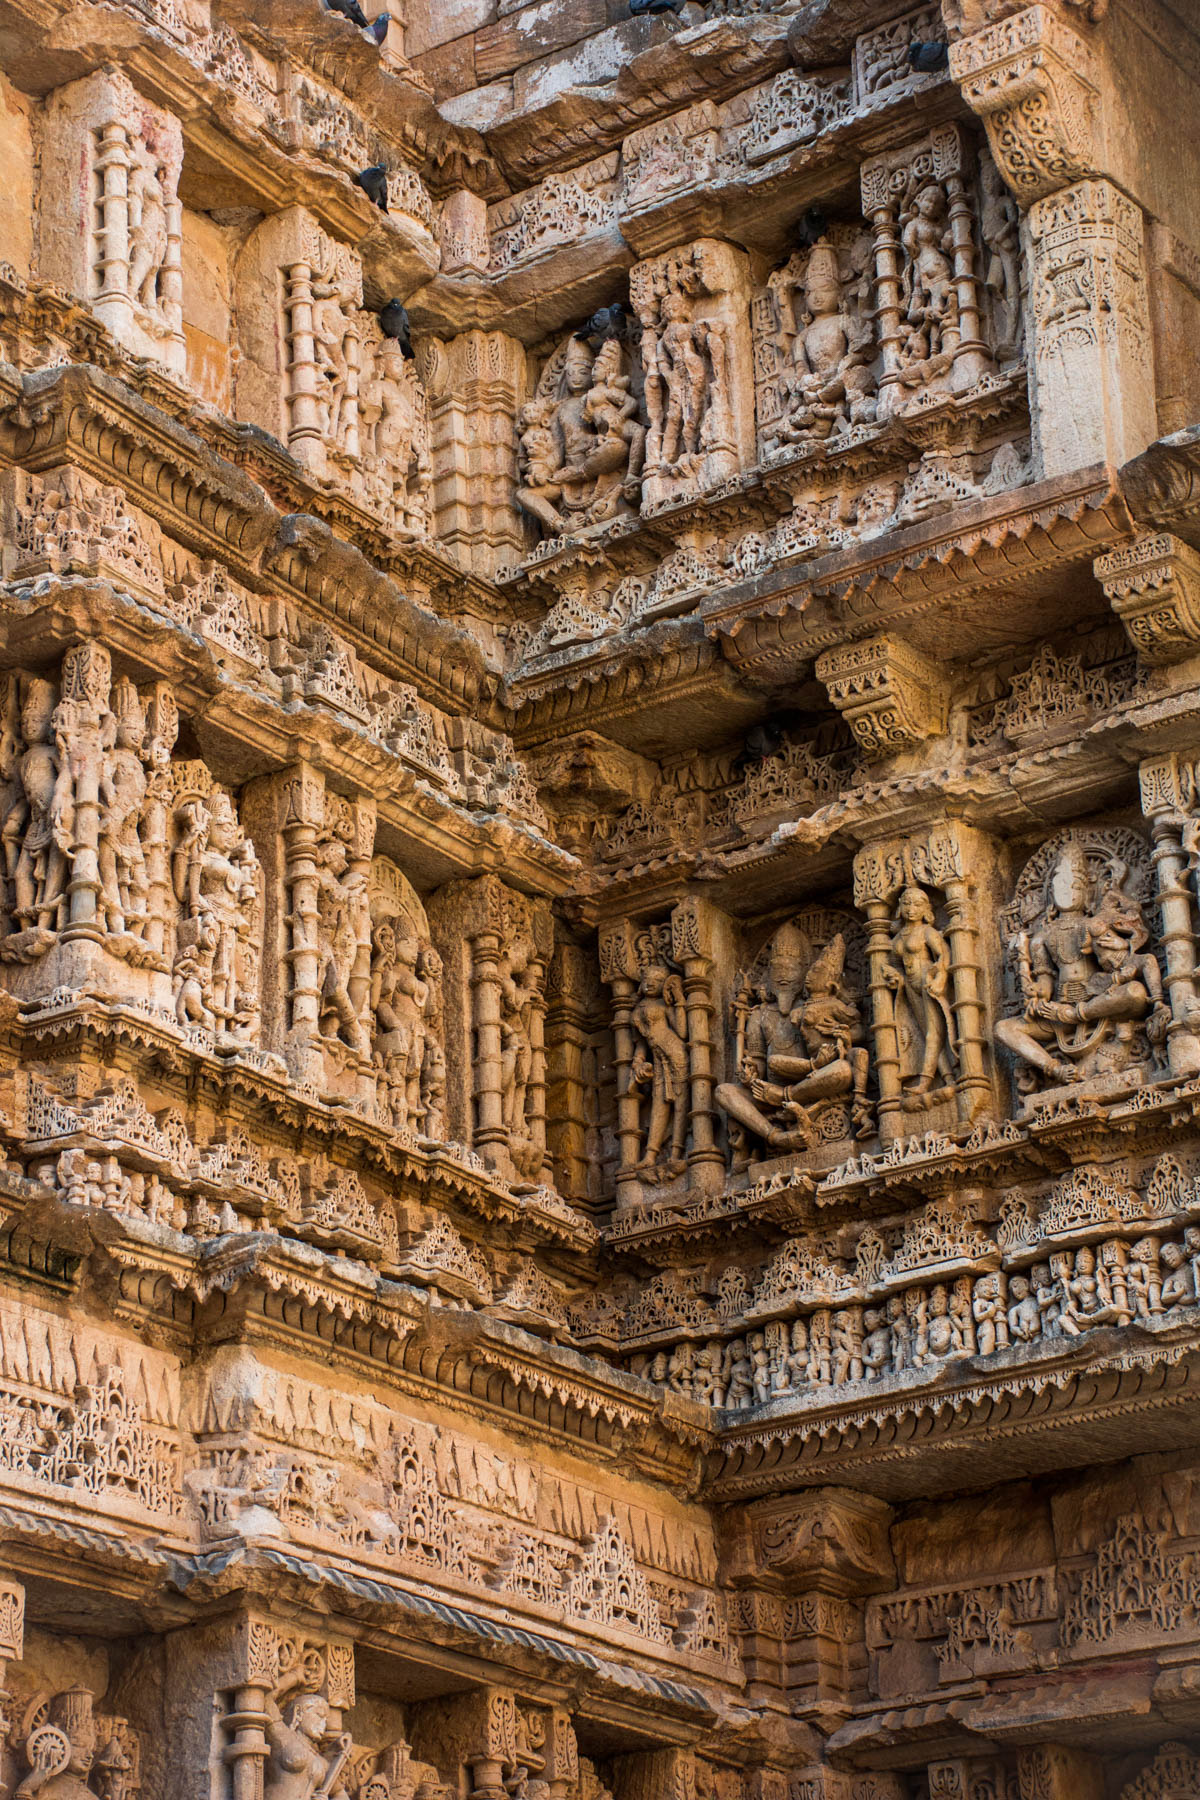 Patan Patola and the histroy of the cloth of kings - Lost